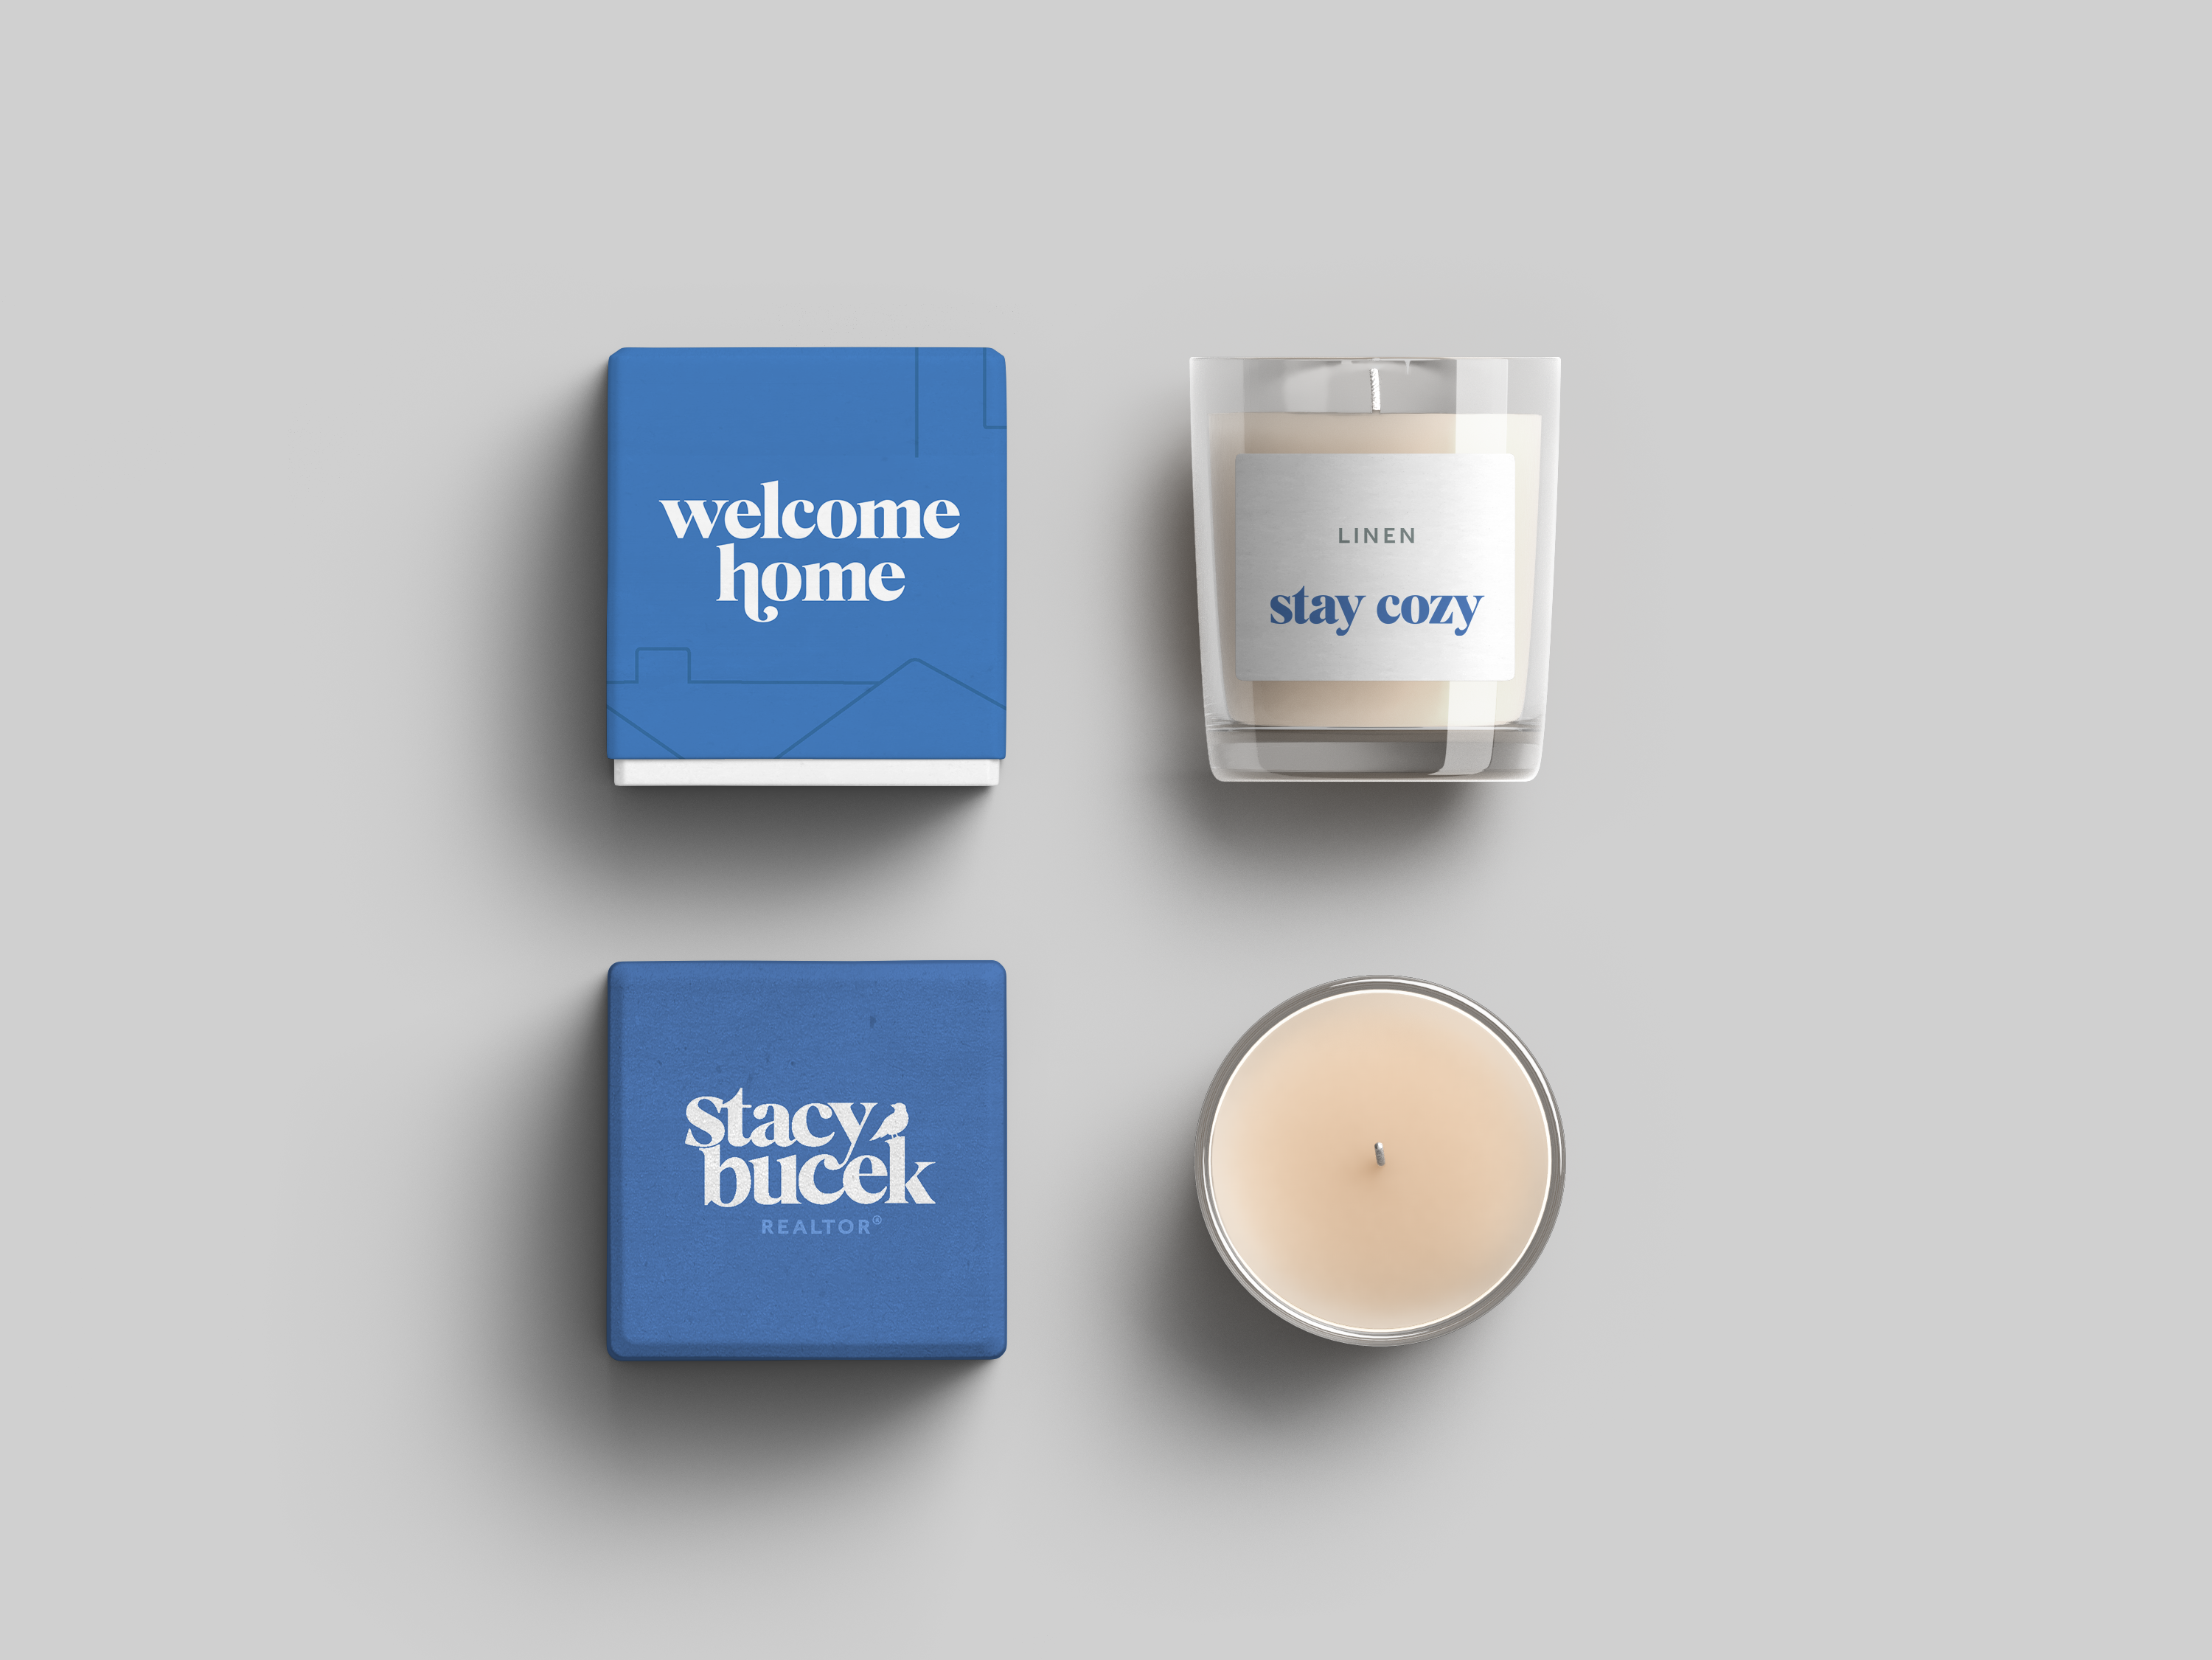 stacy bucek candle